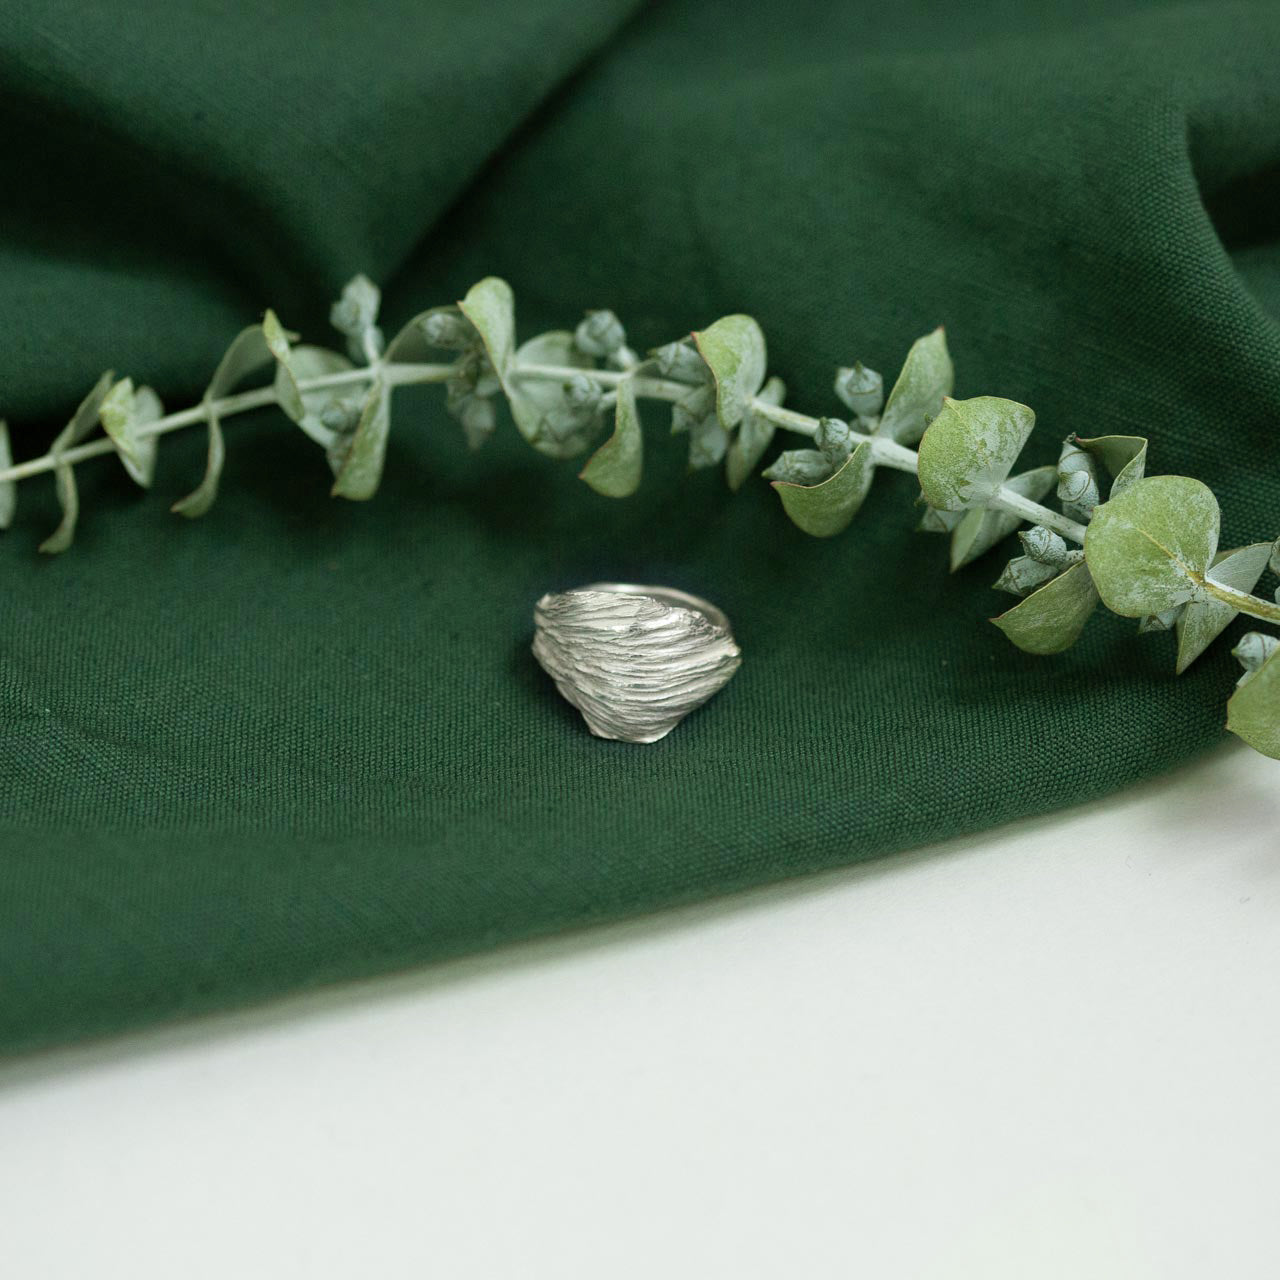 silver artichoke leaf ring on green cloth with dried flower